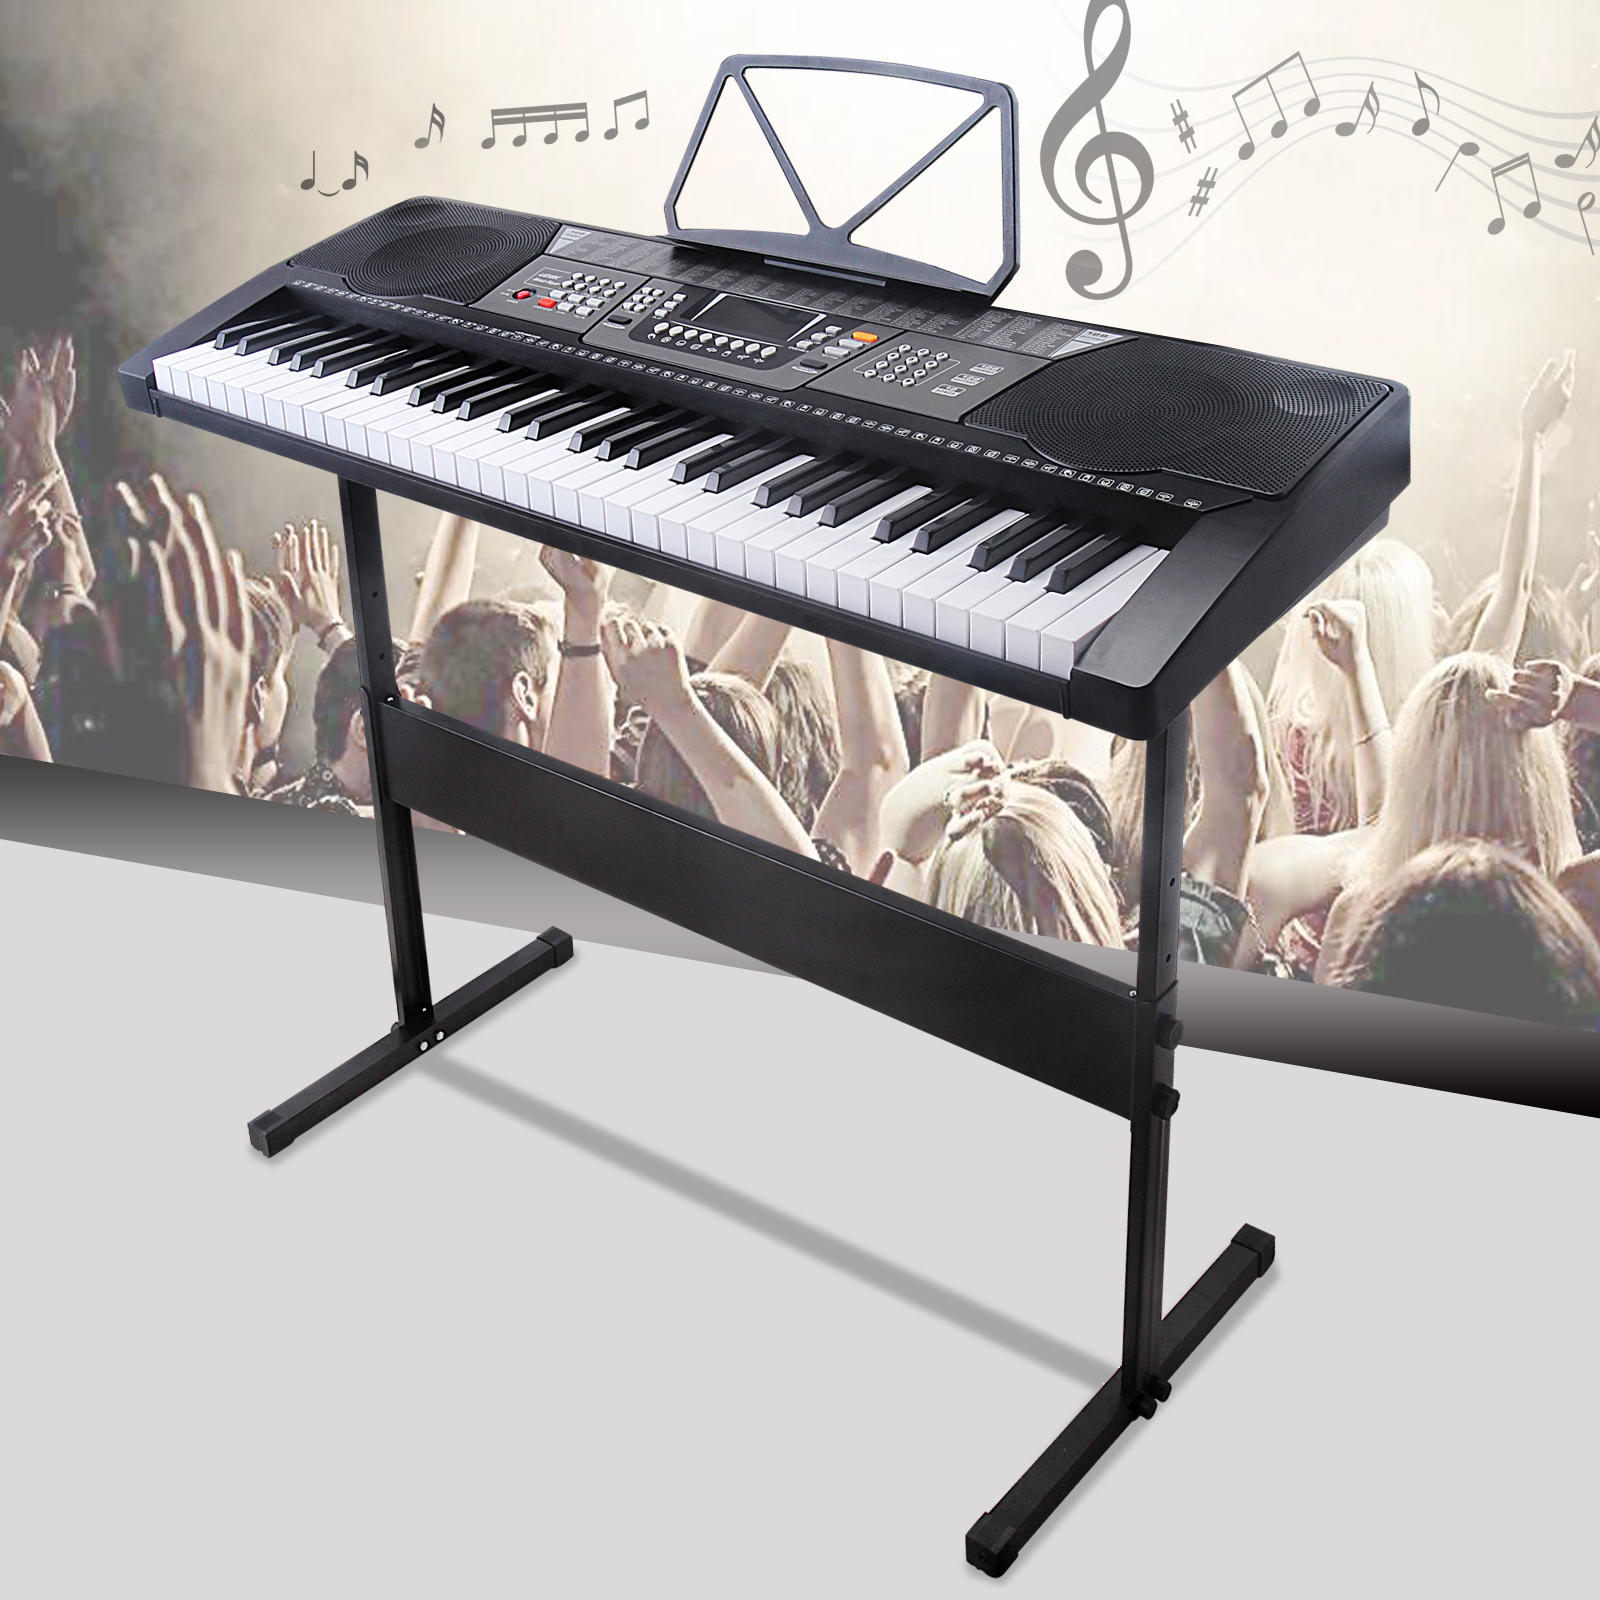 Uenjoy 61 Key Music Electronic Keyboard Electric Digital Piano LED Display LED Screen w /Adjustable H-Stand, Black